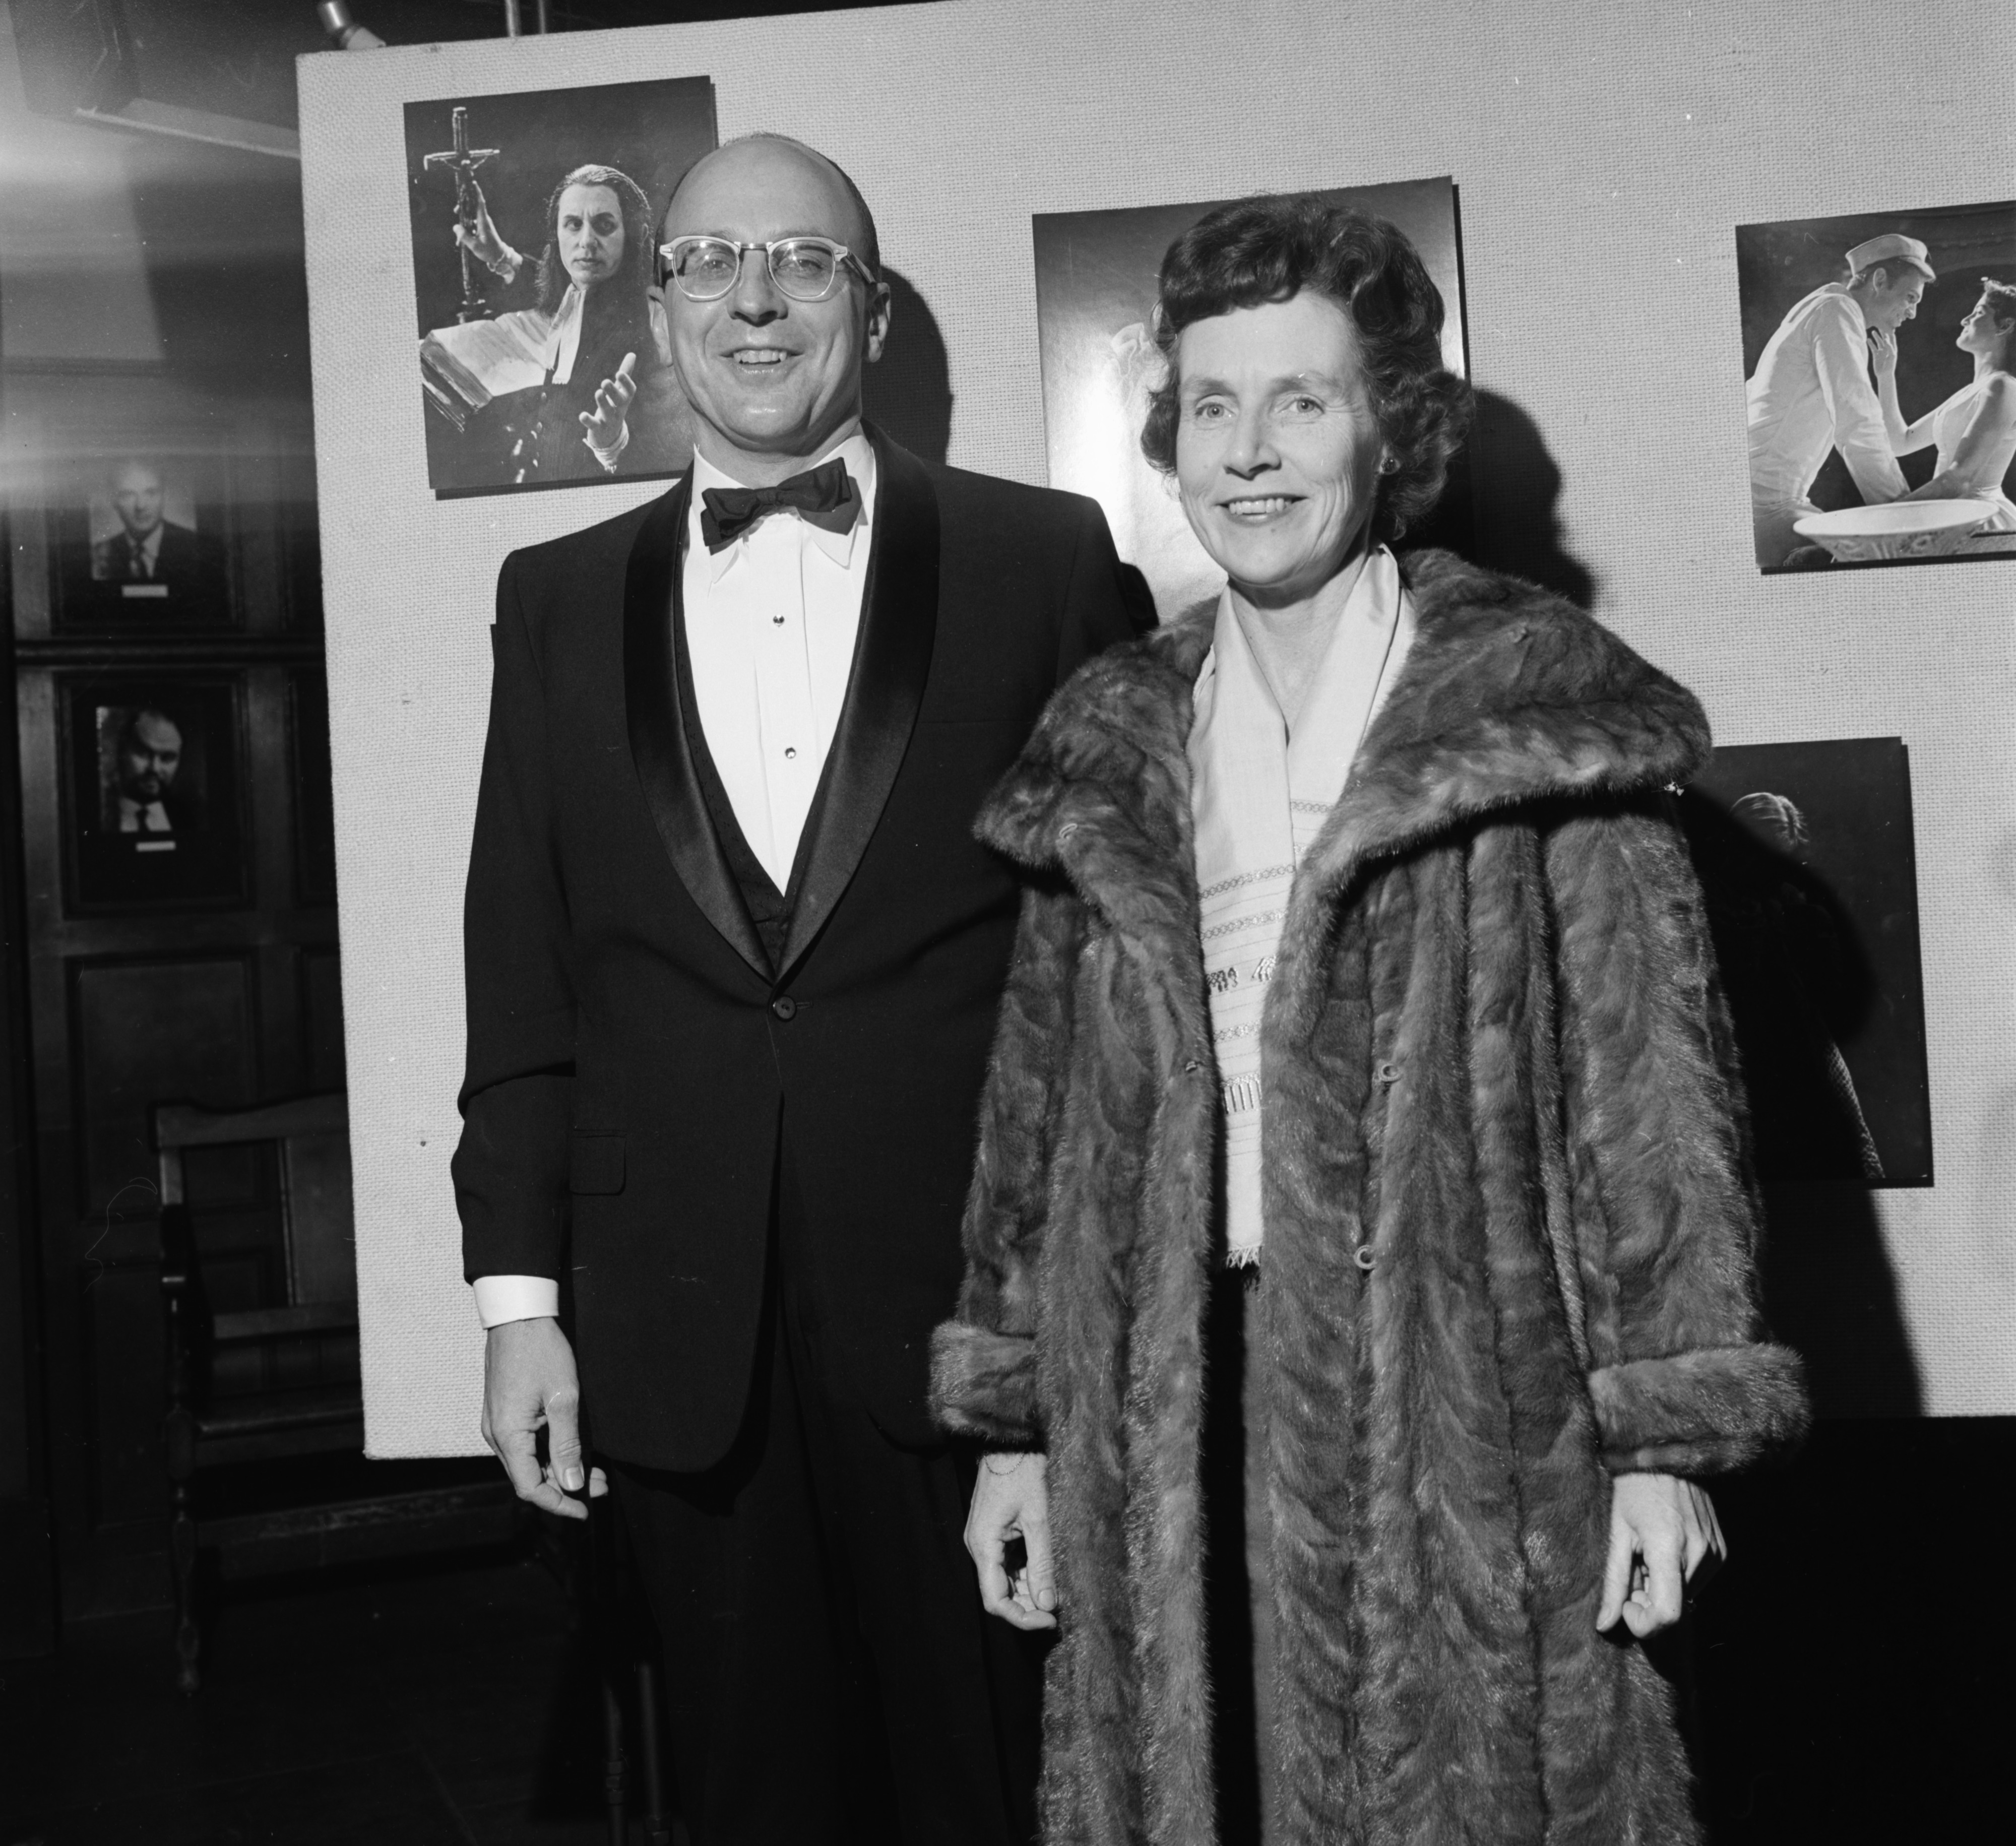 At the University's Professional Theatre (PTP) gala premiere, January 1966 image